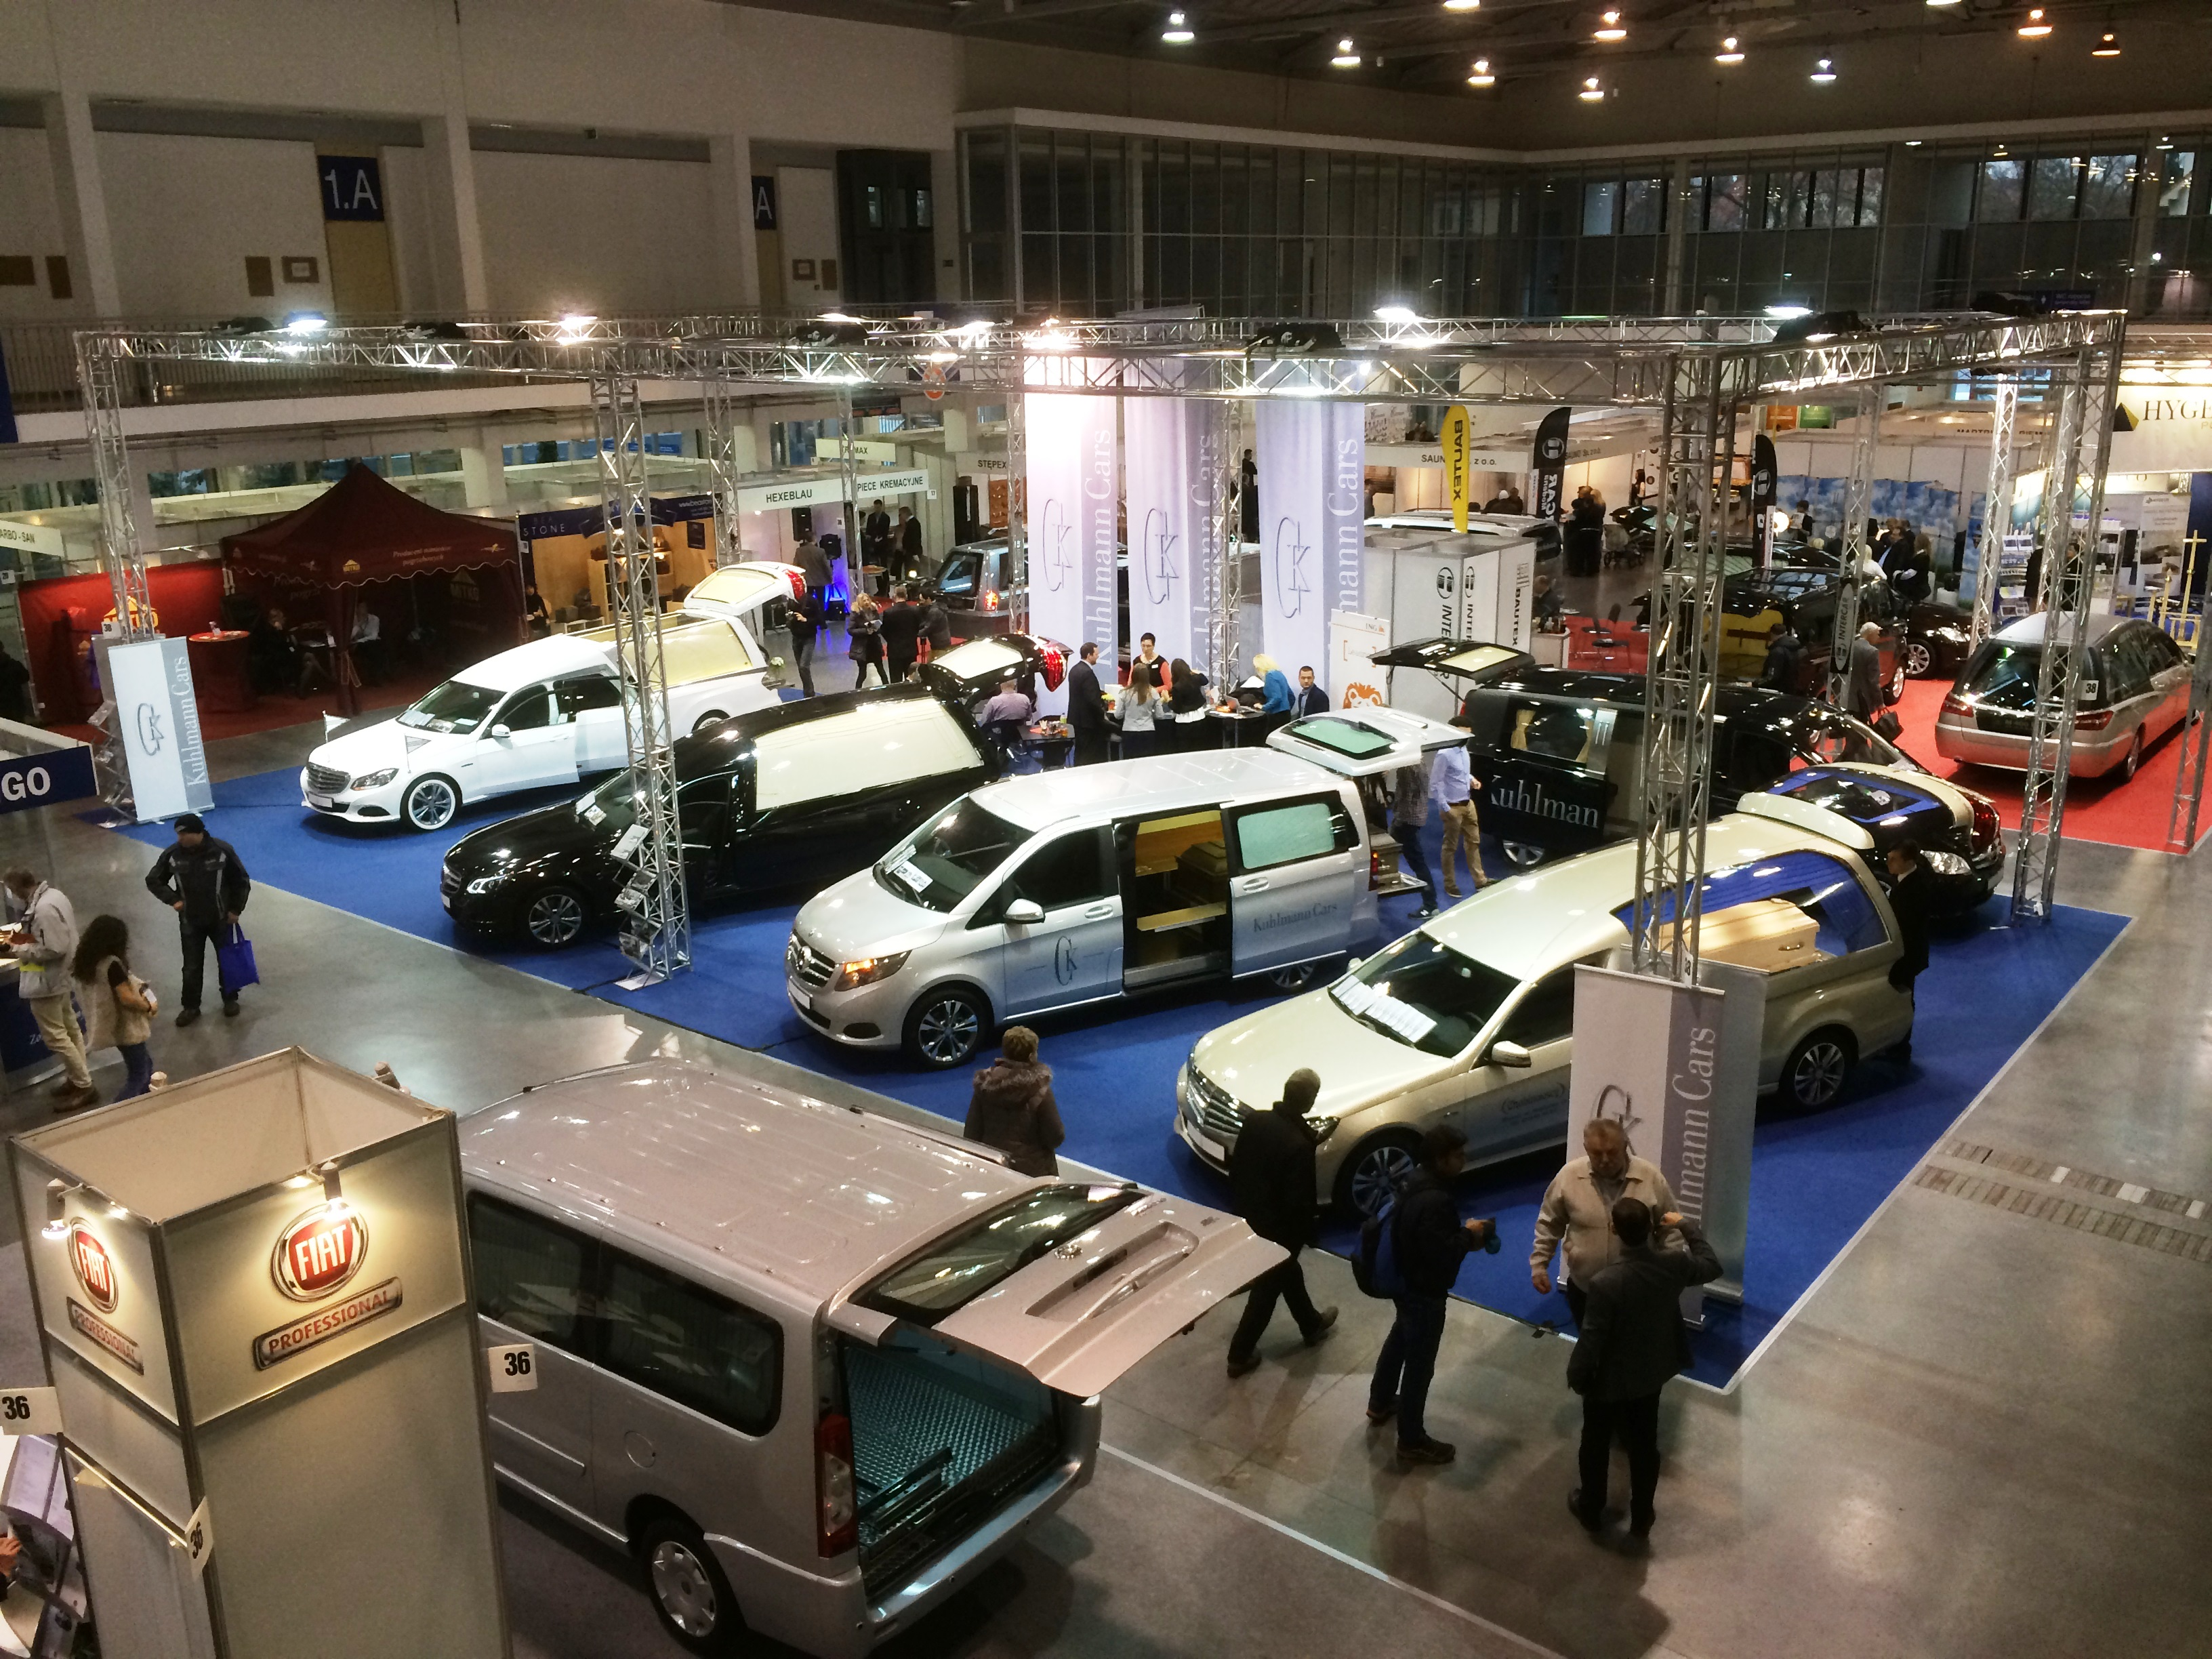 Kuhlmann Cars Messestand